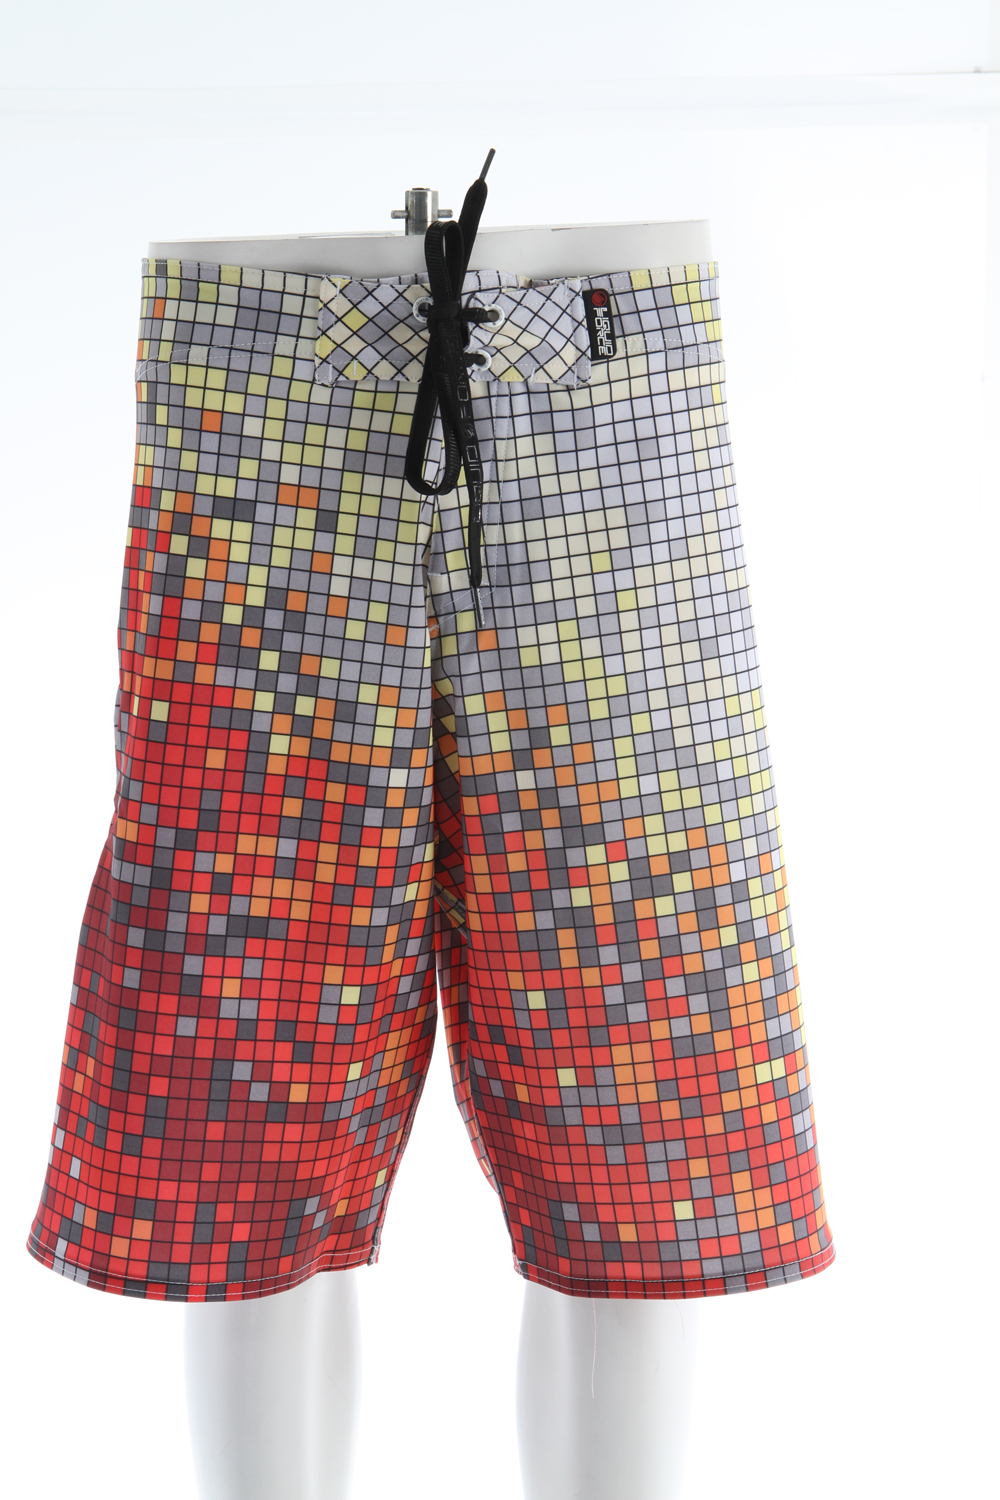 "Surf Key Features of the Liquid Force Pixel Boardshorts: Quick Drying 4-way Liquid Stretch 21"" Outseam Velcro Tab with Lycra Fly Quick Drying Coating No Slip Print string tie - $45.95"